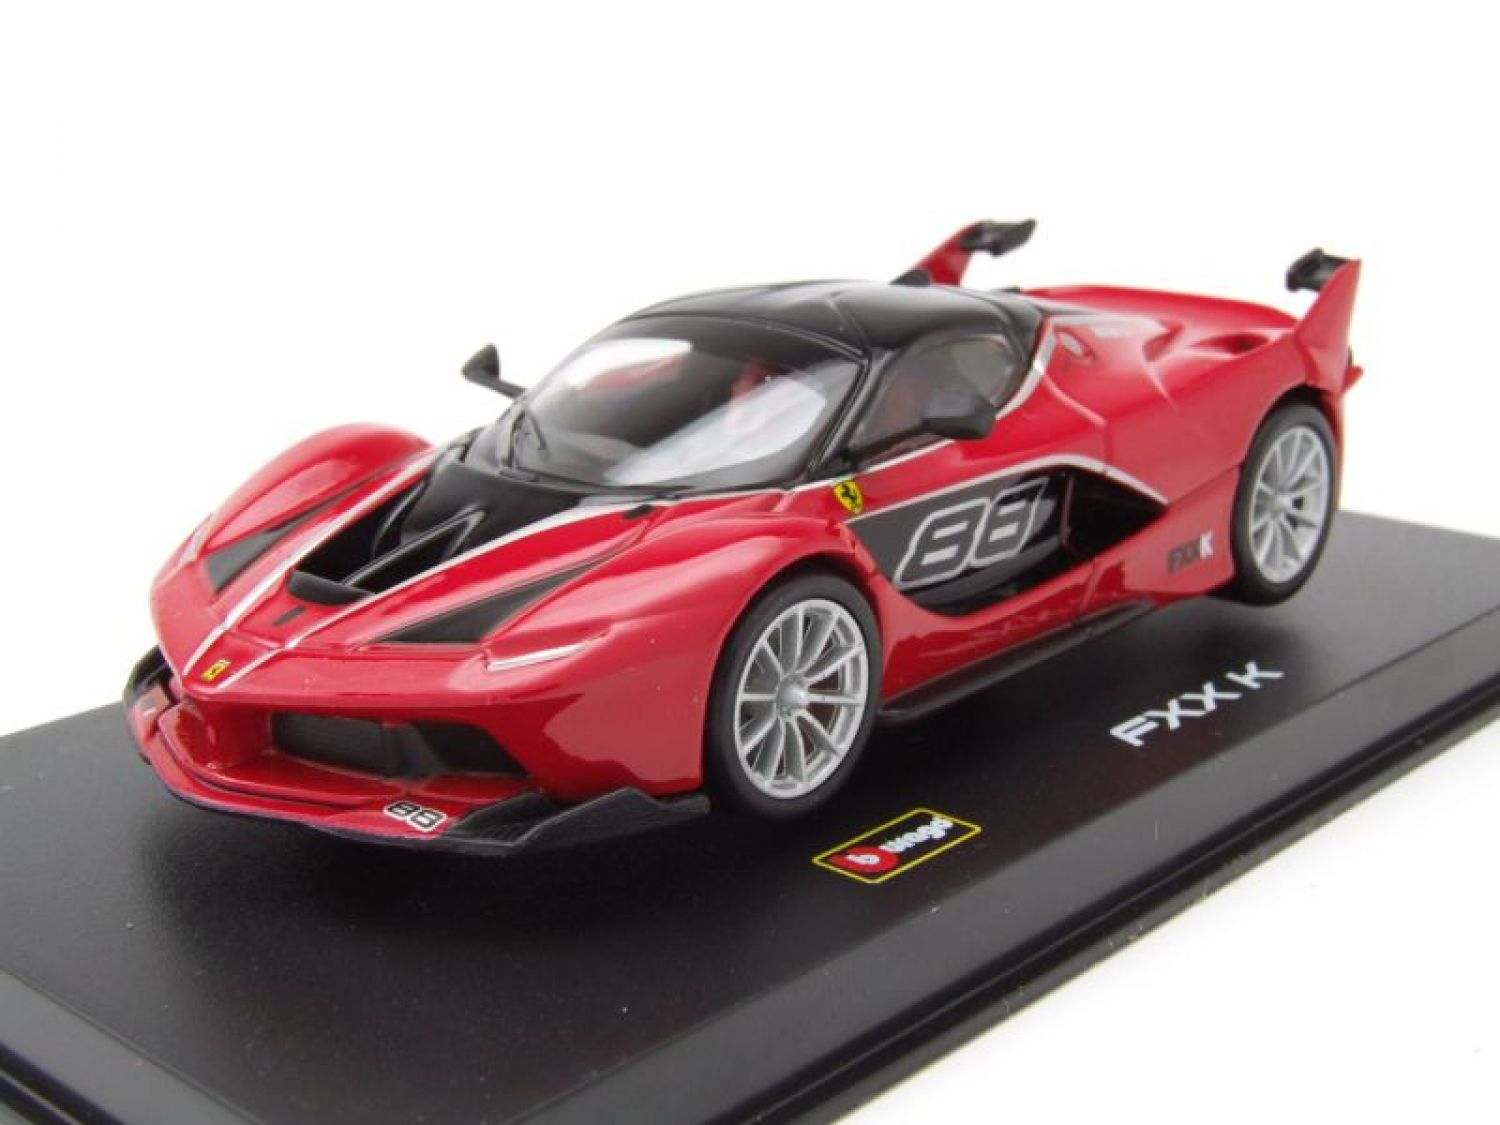 ferrari fxx k 88 2015 rot modellauto 1 43 burago ebay. Black Bedroom Furniture Sets. Home Design Ideas